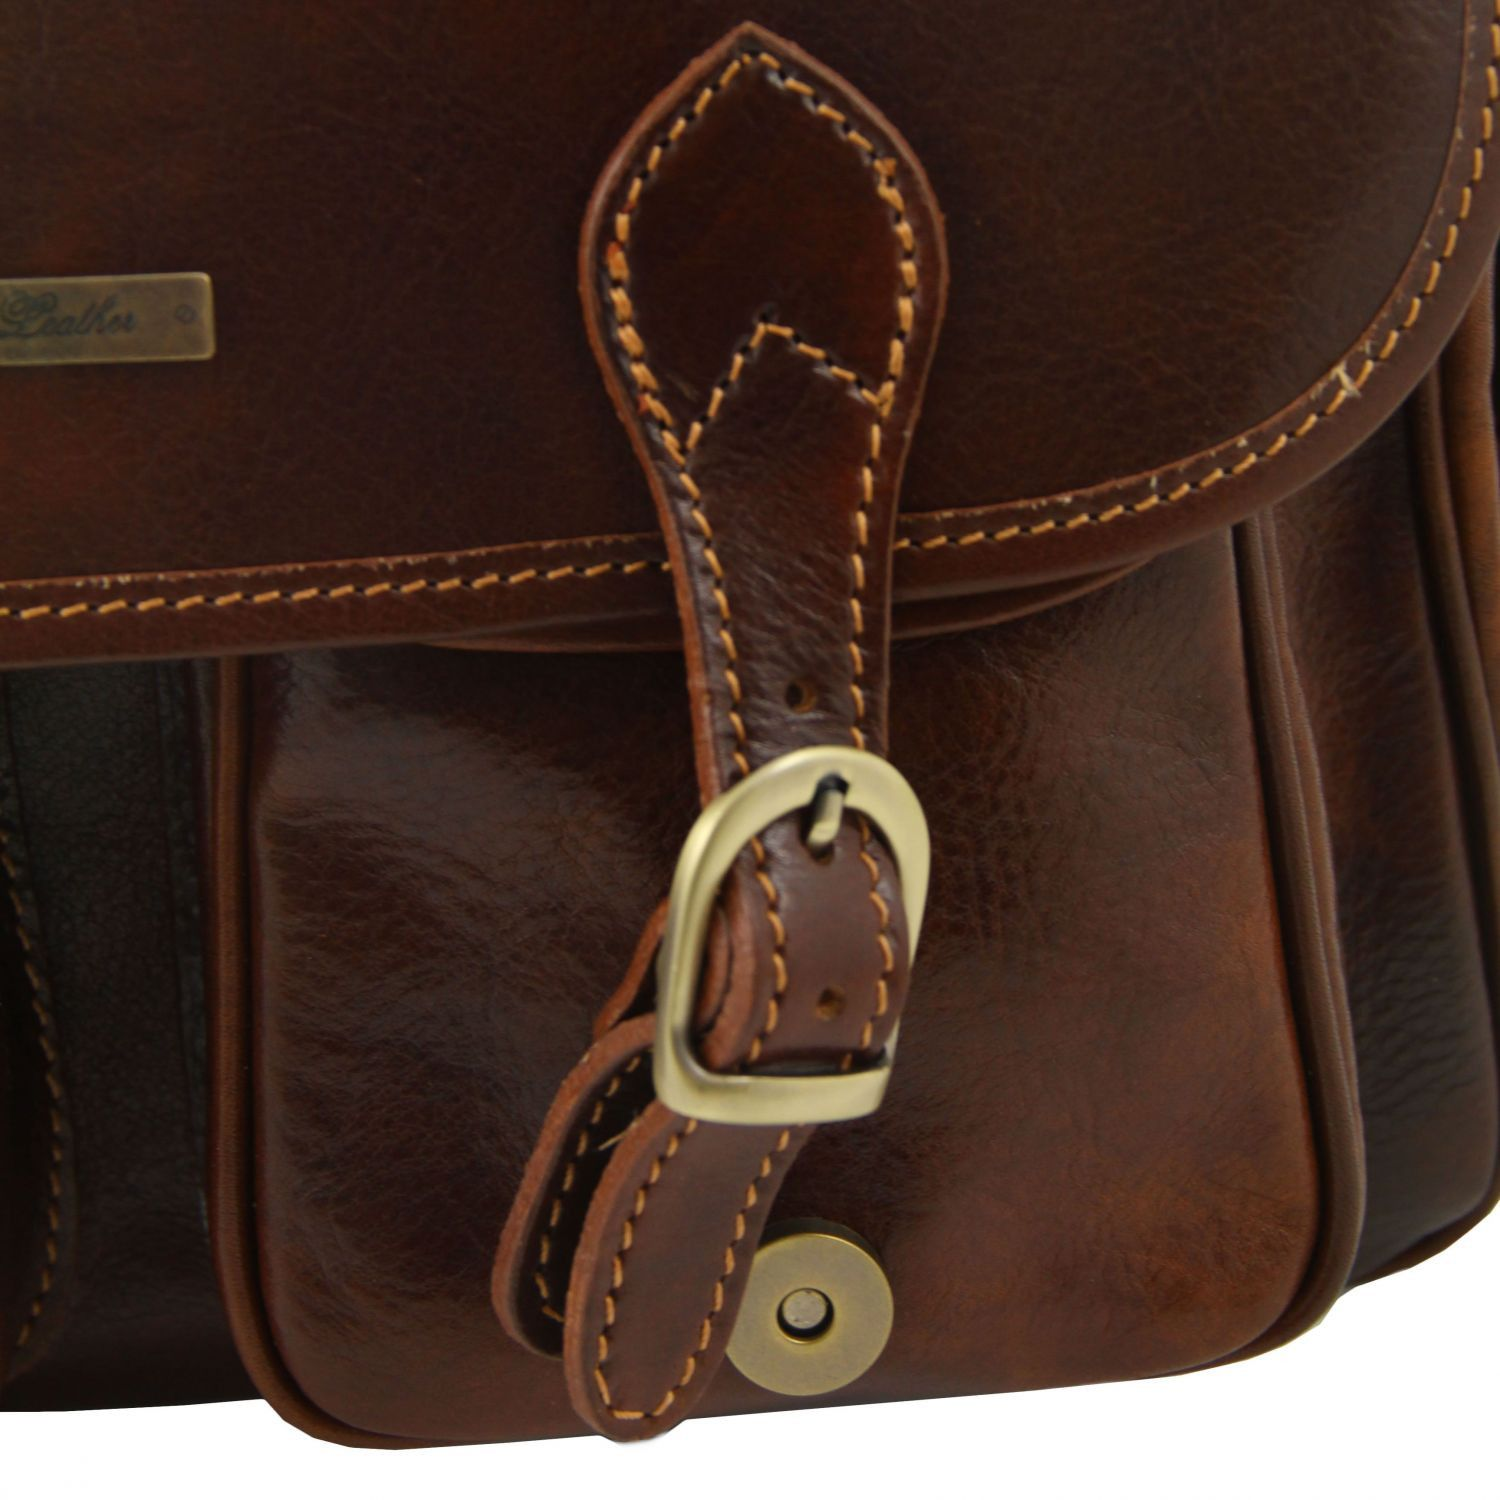 Tuscany Leather - San Marino - Sac de voyage en cuir avec poches frontales Marron - TL10180/1 t0040GQ0LC